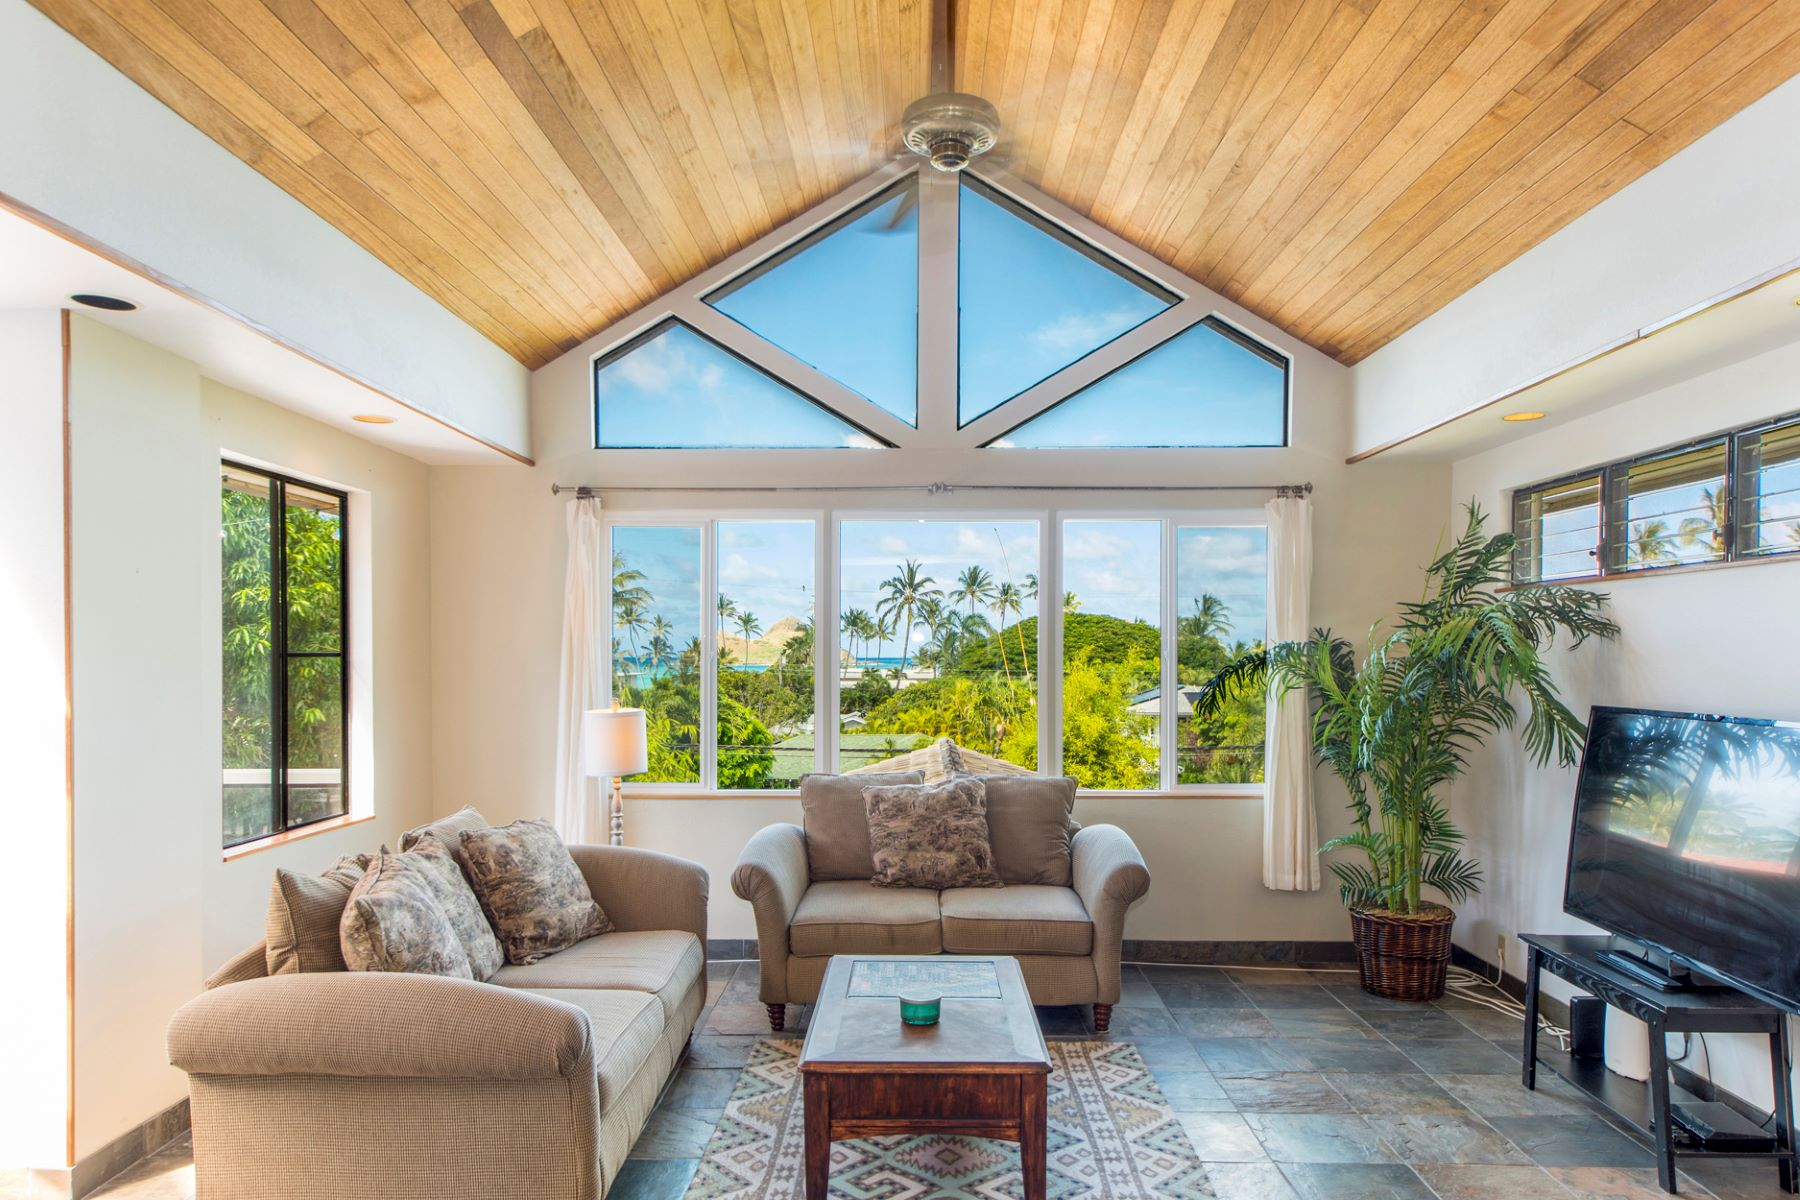 Single Family Home for Active at Amazing Views in Lanikai 1341 Aalapapa Dr Kailua, Hawaii 96734 United States